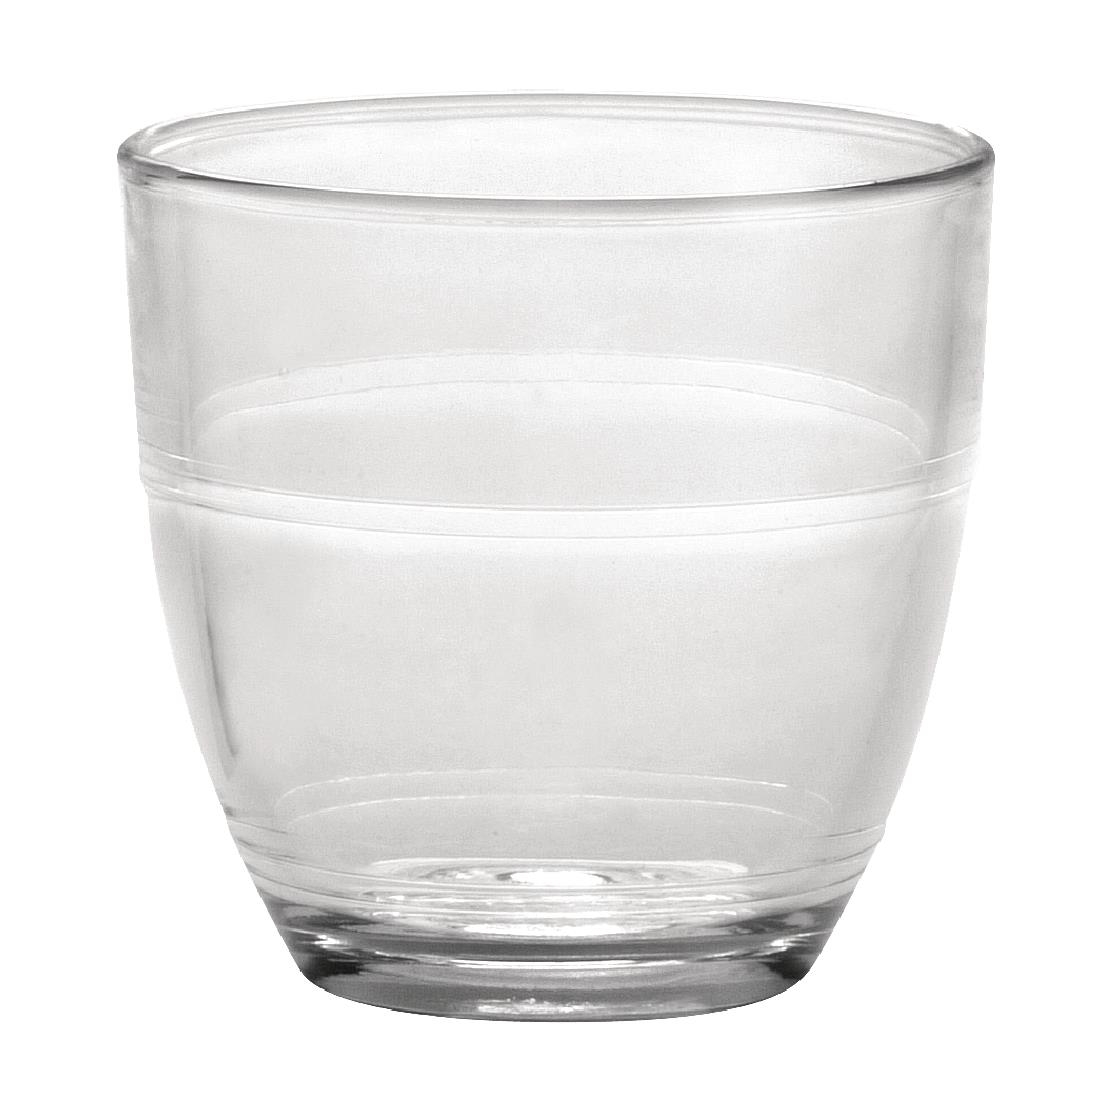 Image of Duralex Gigogne Tumblers 160ml (Pack of 6) Pack of 6